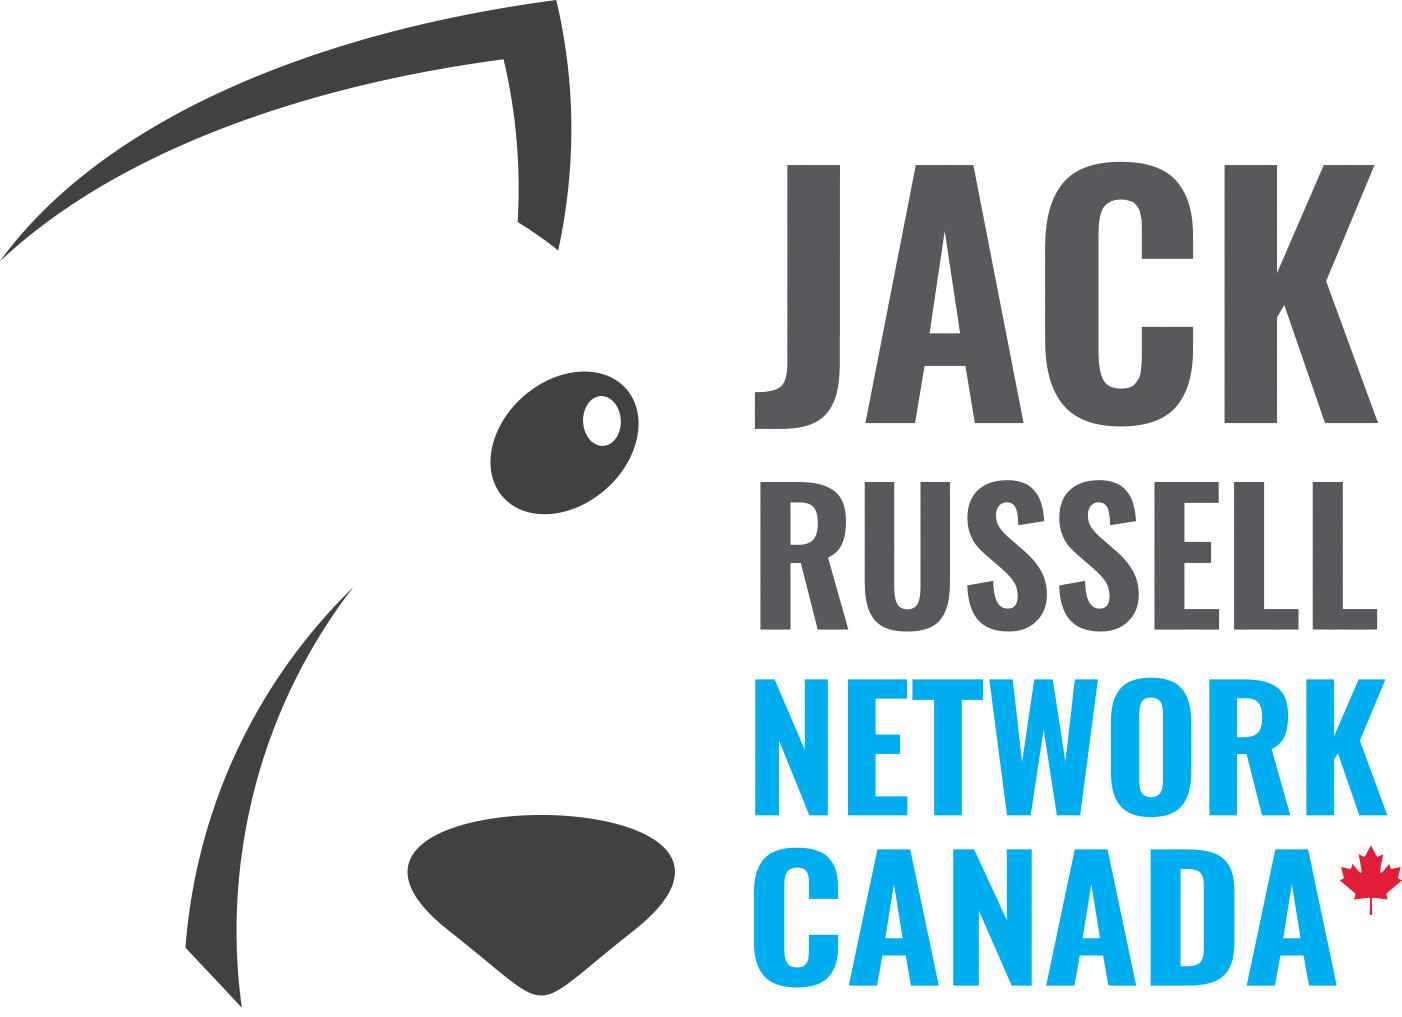 Jack Russell Network Canada